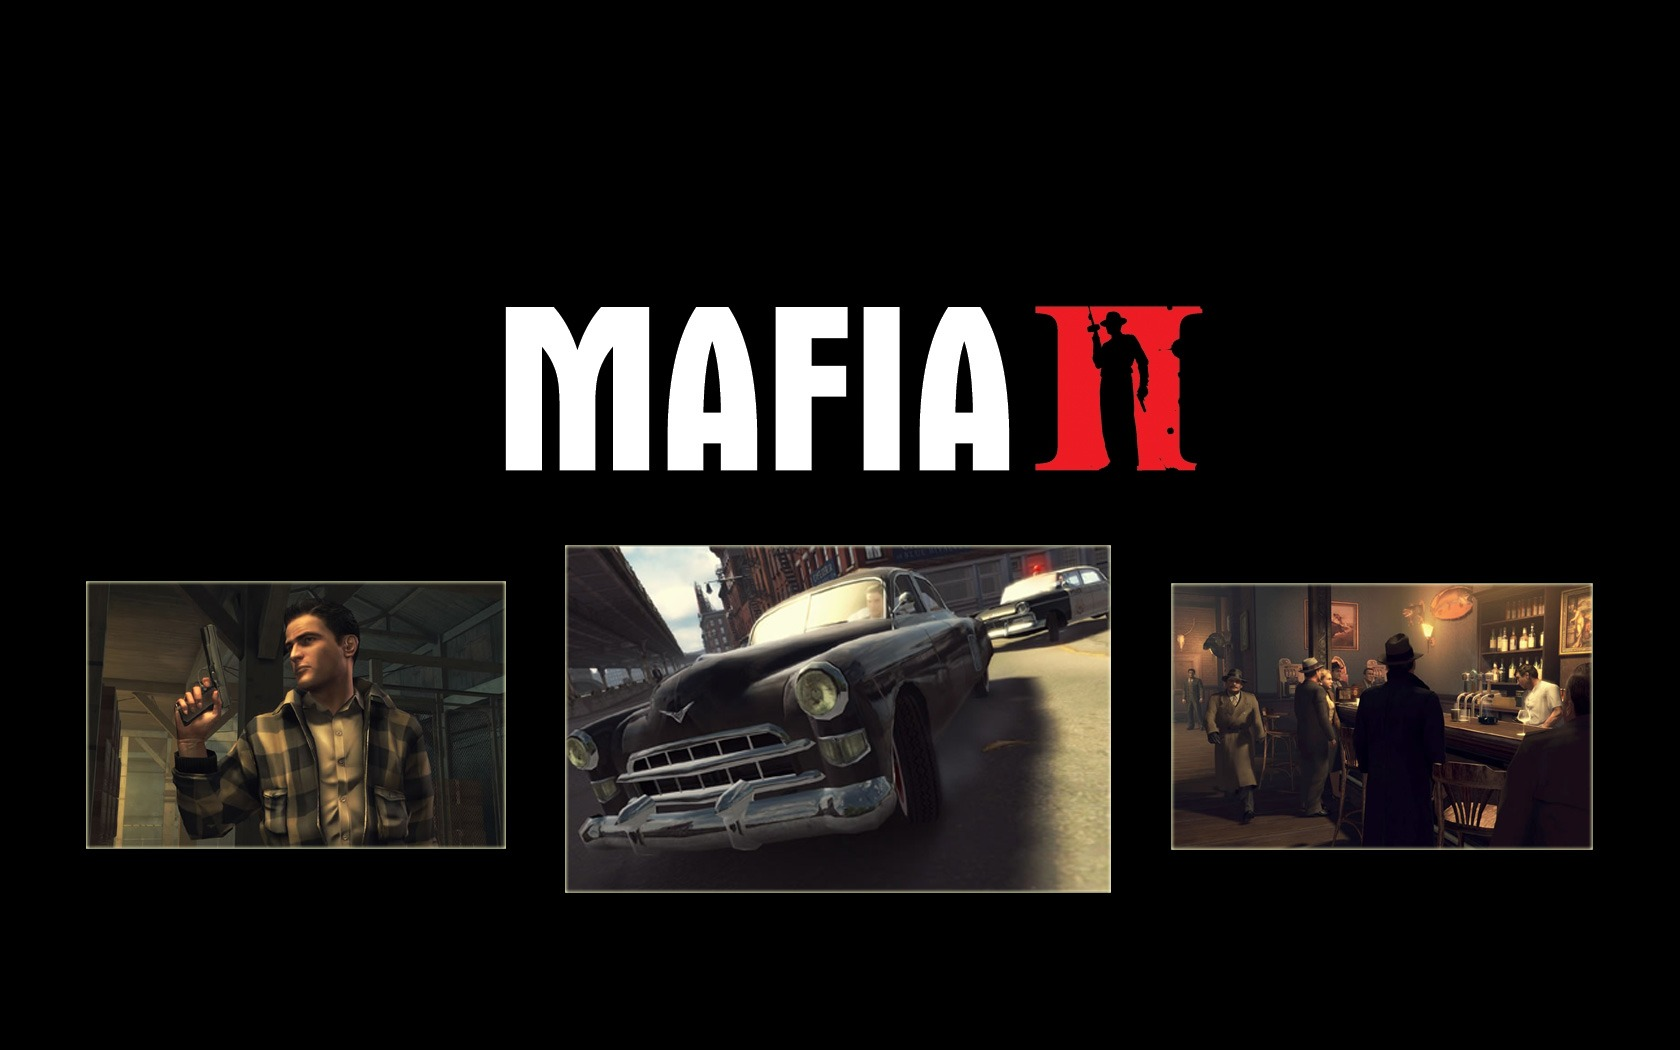 Mafia Gangster Wallpapers Background Is Cool Wallpapers